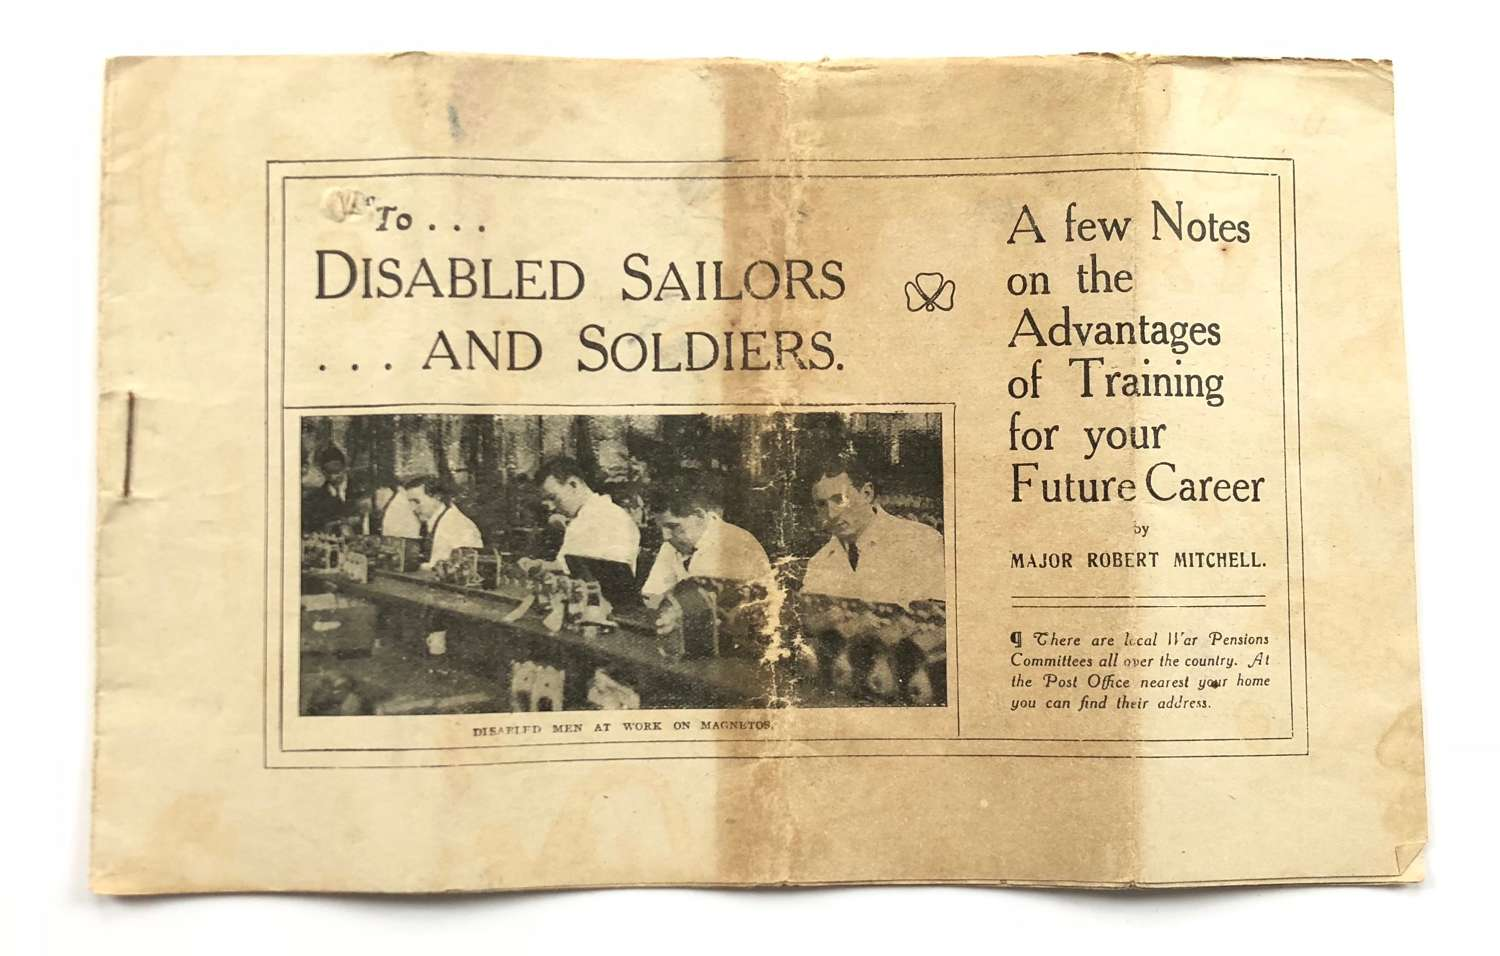 WW1 Rare Official Booklet for Disabled Sailors and Soldiers.